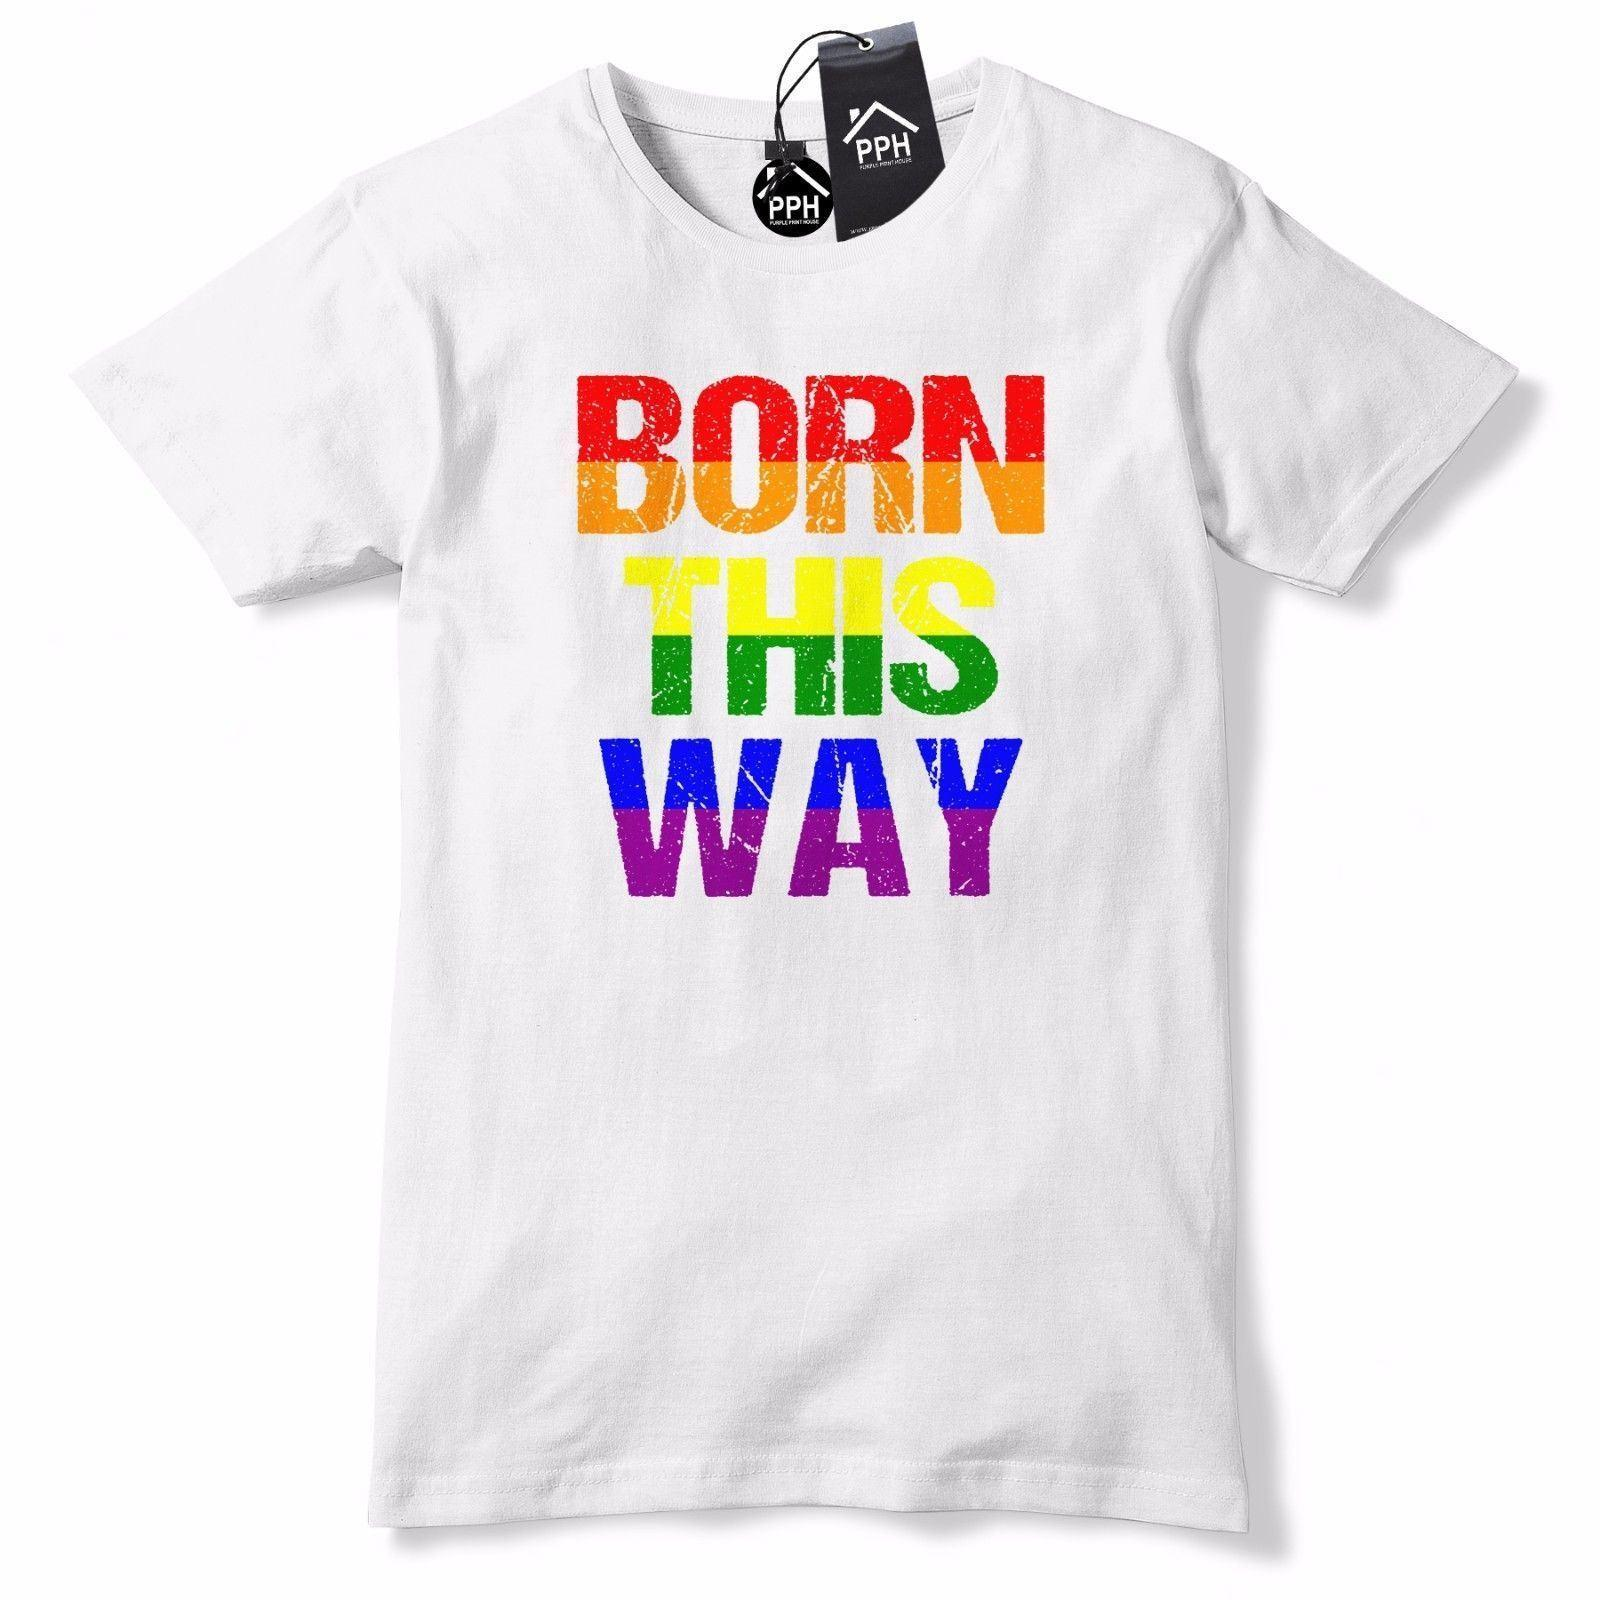 4699f14b0a8e Born This Way Gay Pride T Shirt Rainbow Tshirt Lesbian Glitter LGBT  Festival 671 Funny Unisex Casual Tee Gift Really Funny Shirts Clothes T  Shirt From ...